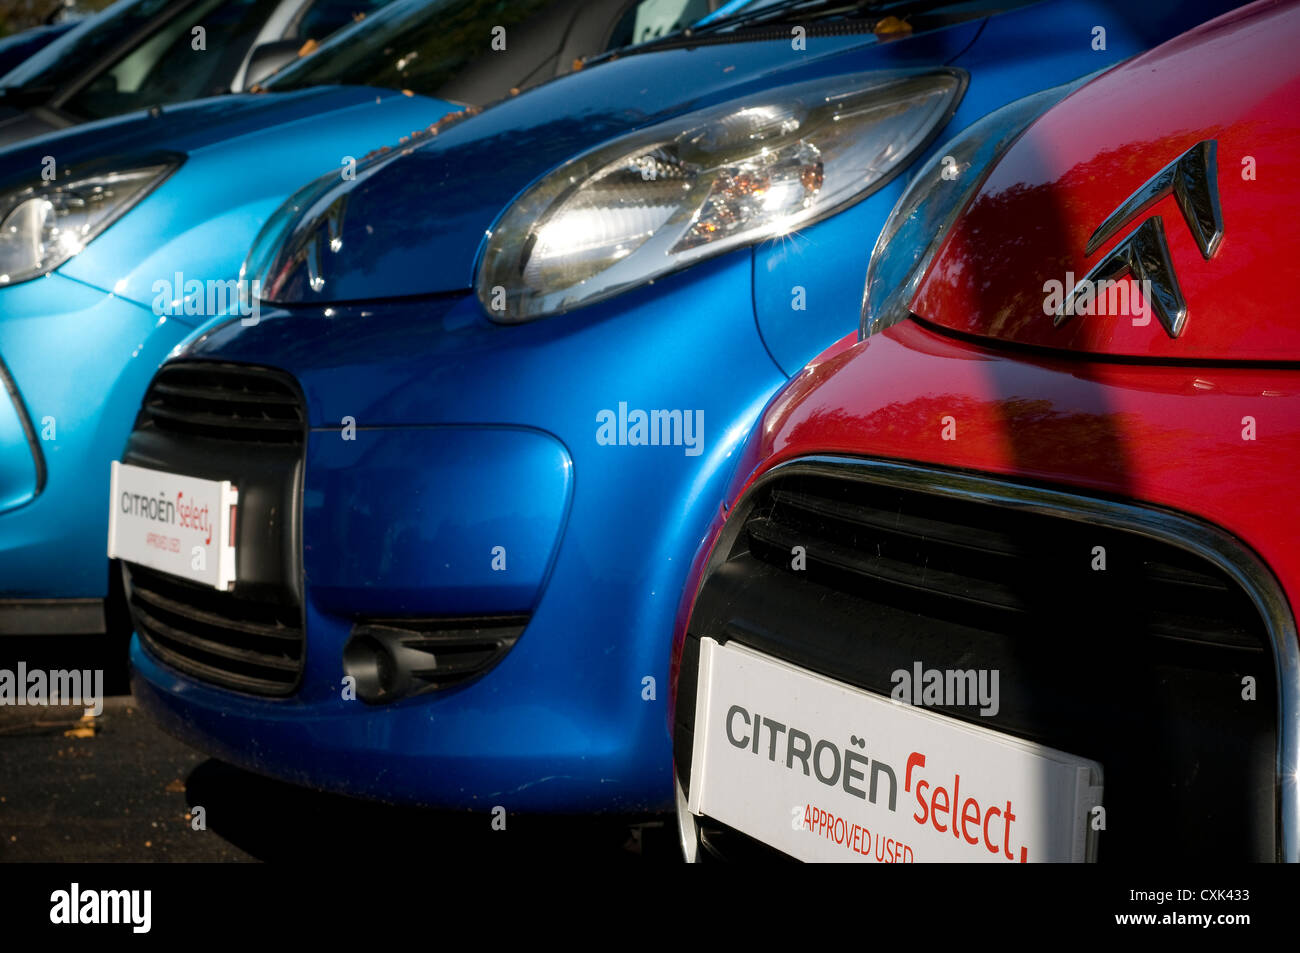 citroen cars,citroen select, citroen,wait,ahead, asphalt,pedestrians business,parked forecourt,garage, - Stock Image